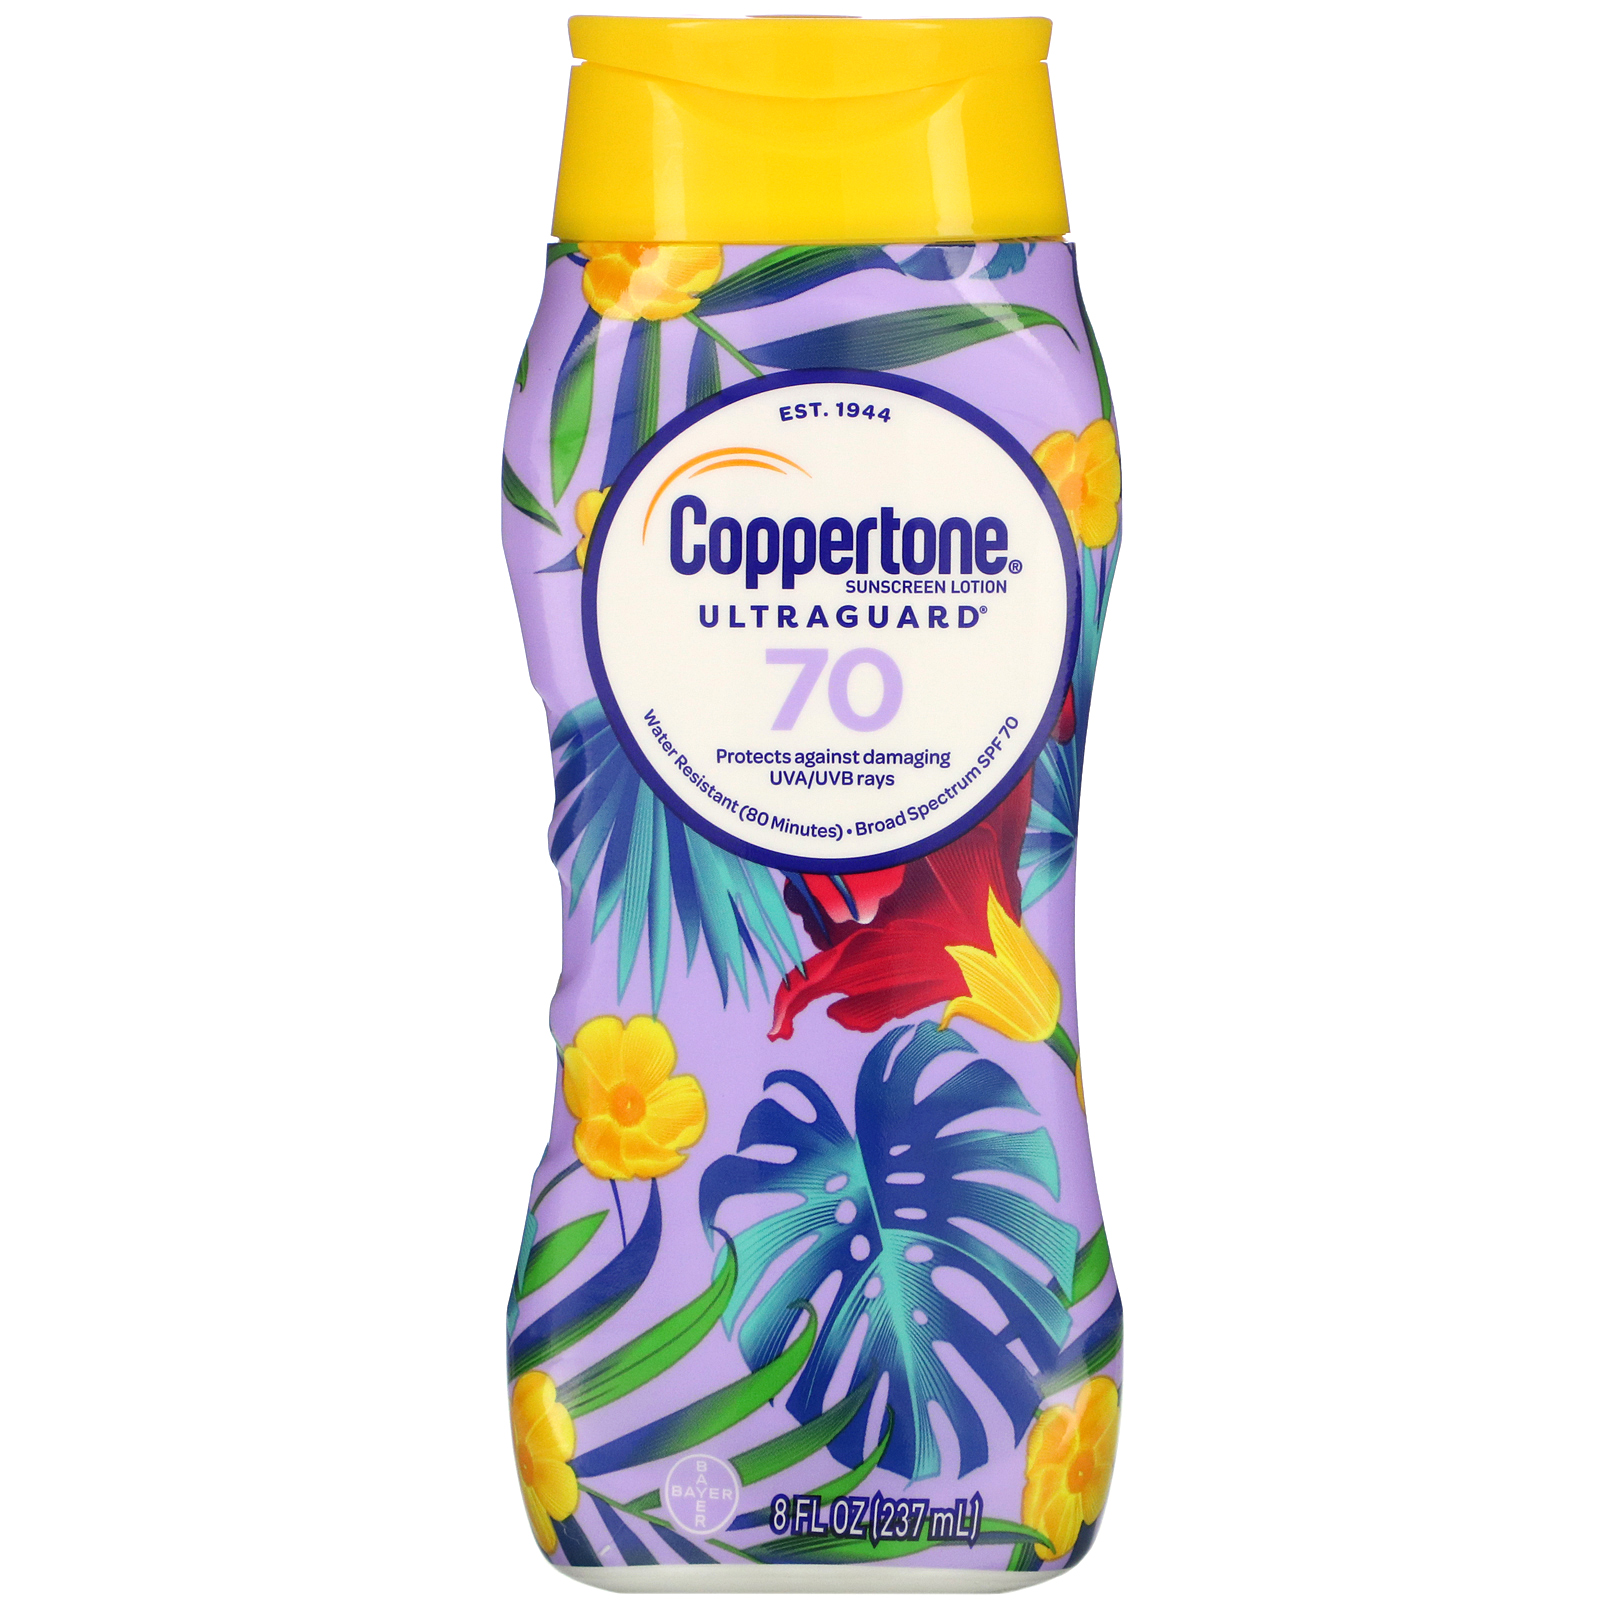 Coppertone, Ultra Guard, Sunscreen Lotion, SPF 70, 8 fl oz (237 ml)